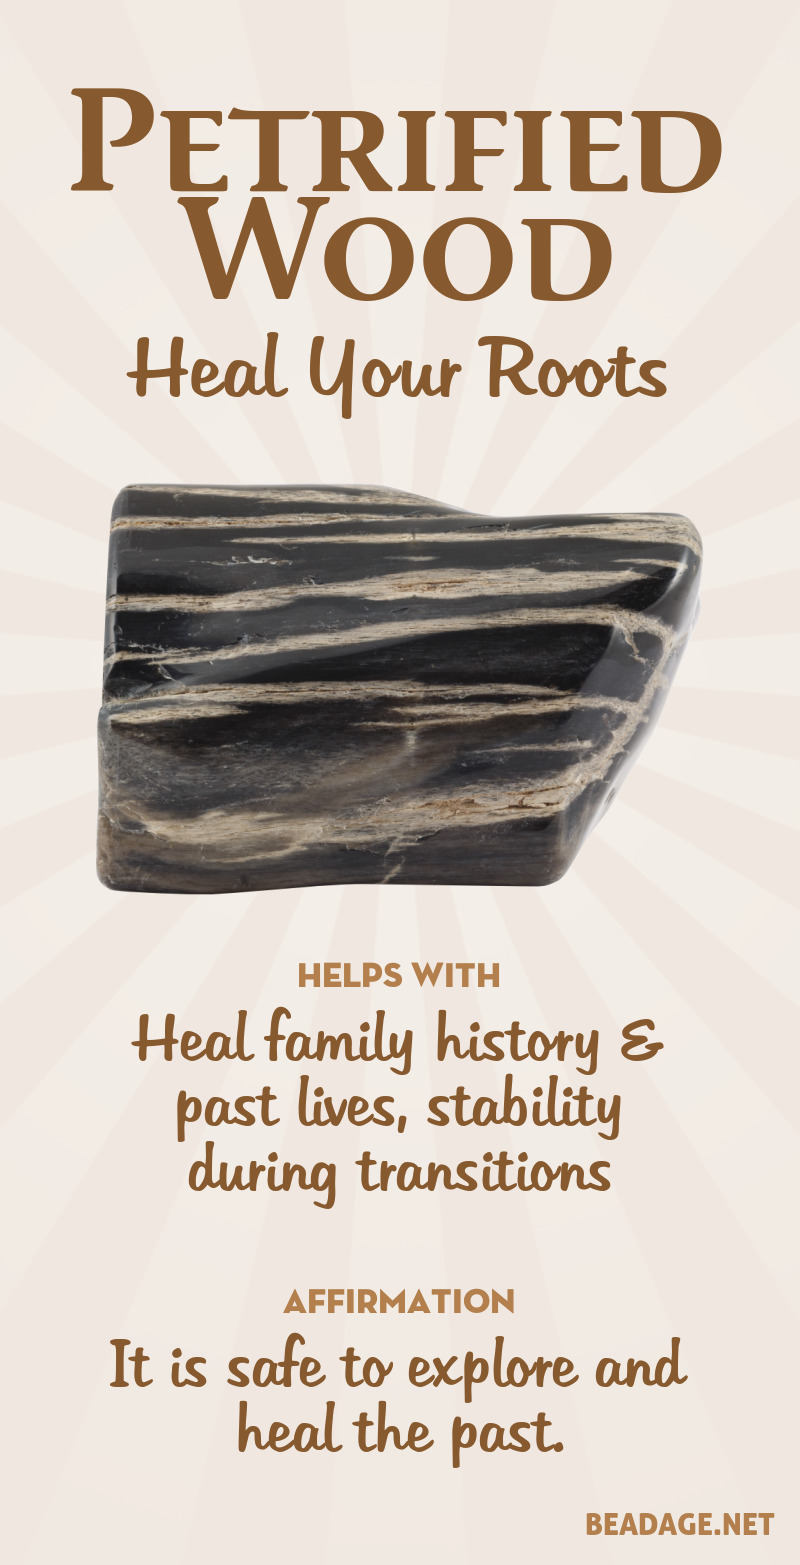 Petrified wood is an ancient fossil of a tree. It is calming, soothing, and nurturing and can help heal problems arising from family history or past lives. Learn more about Petrified Wood meaning + healing properties, benefits & more. Visit to find gemstone meanings & info about crystal healing, stone powers, and chakra stones. Get some positive energy & vibes! #gemstones #crystals #crystalhealing #beadage